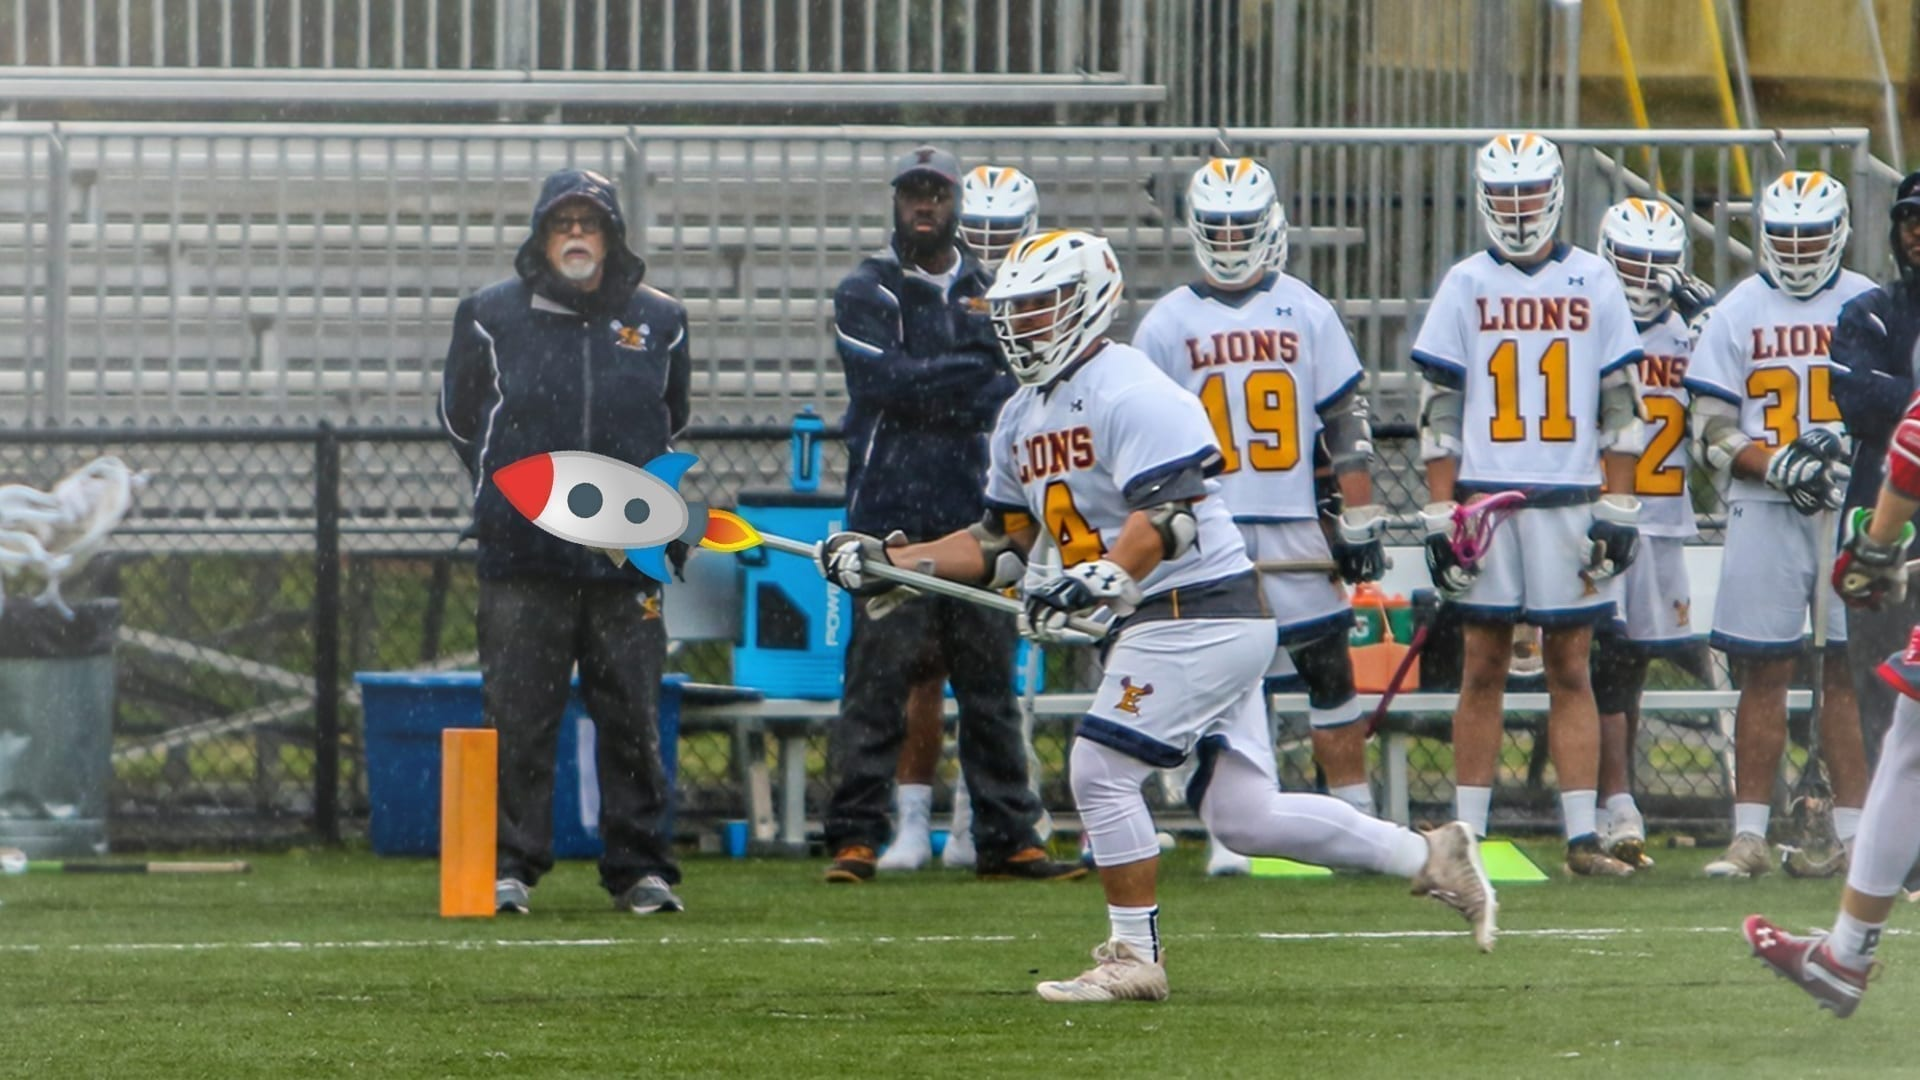 emmanuel college michael ballsy balsamides ncaa division 2 lacrosse college full-field assist